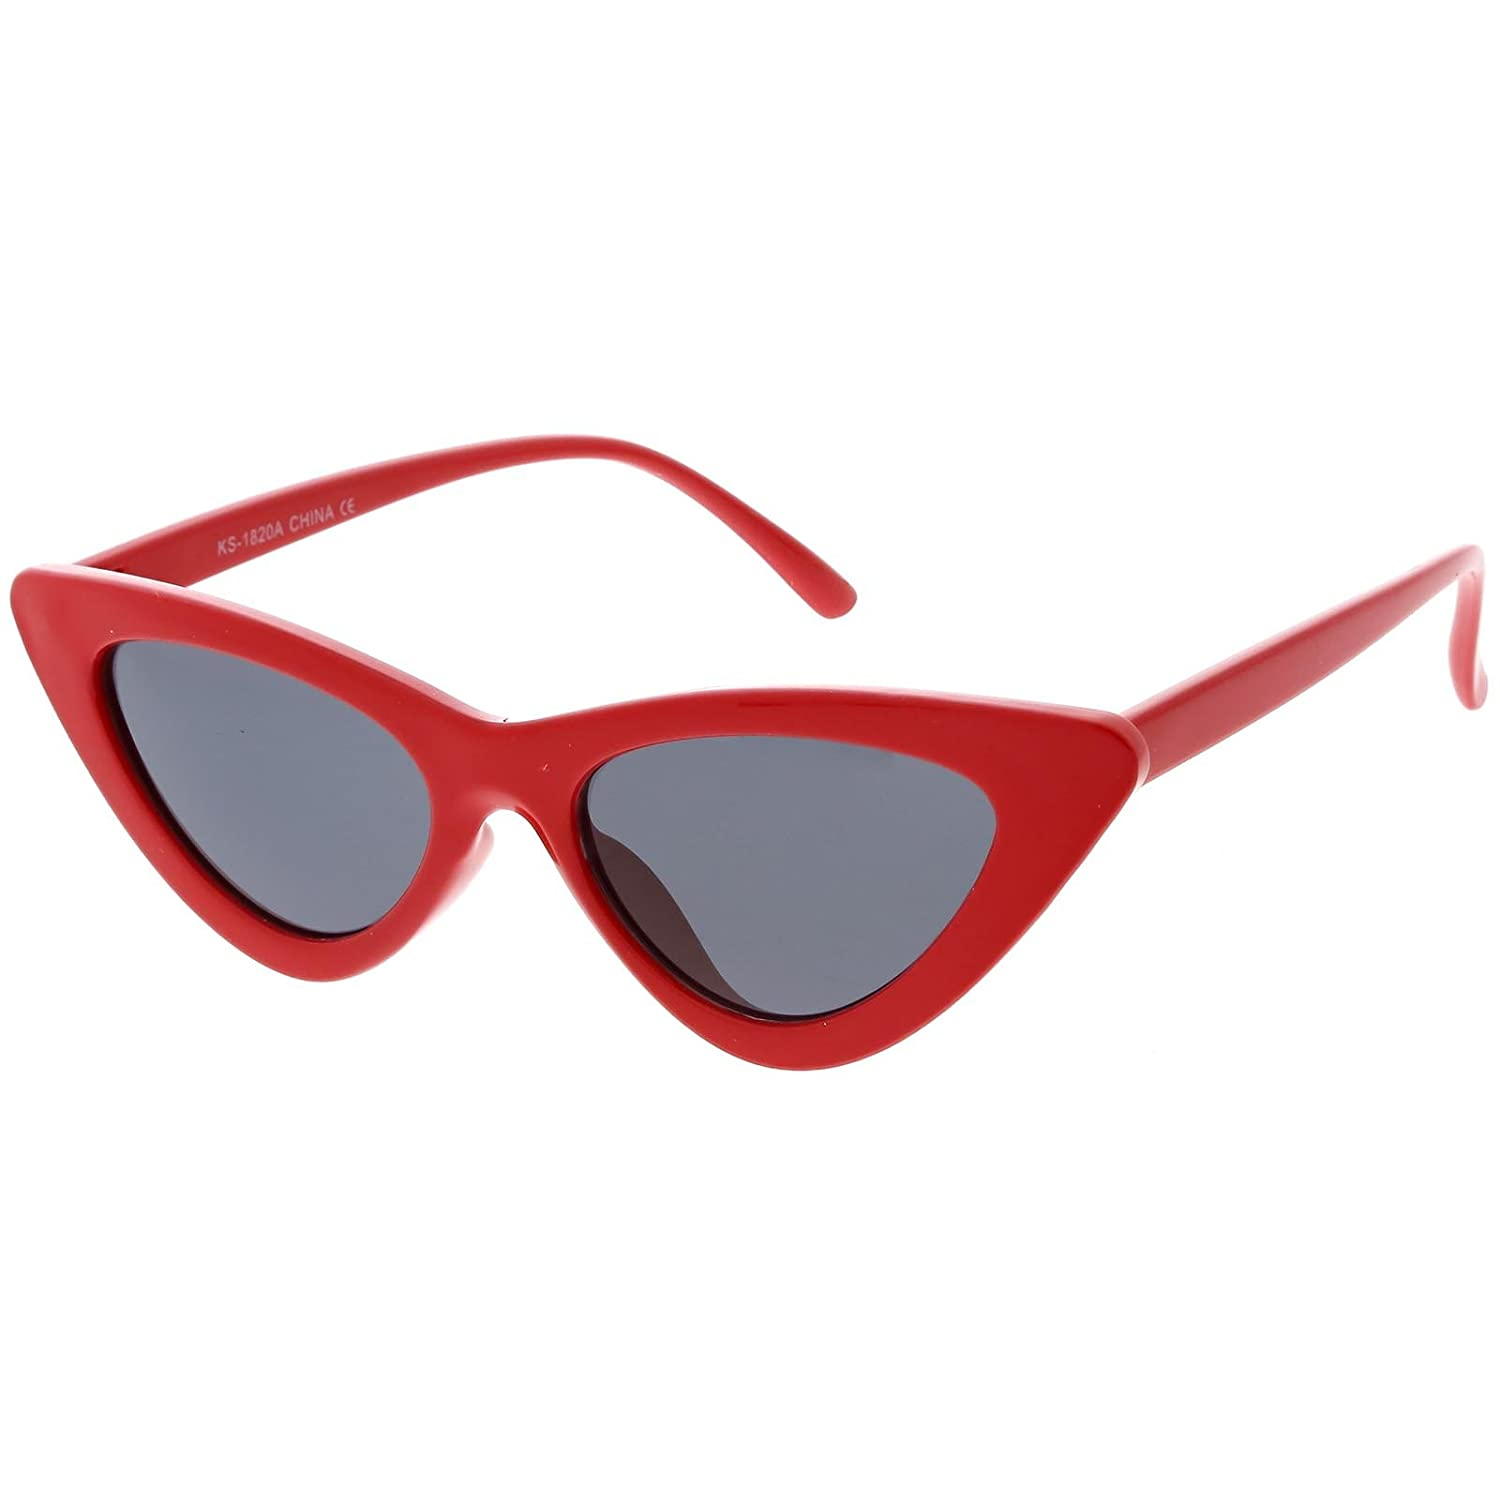 9f660ba7906b Amazon.com  sunglassLA - Retro Vintage Trendy Cat Eye Sunglasses for Women  with Flat Triangle Lens (Red Smoke)  Clothing